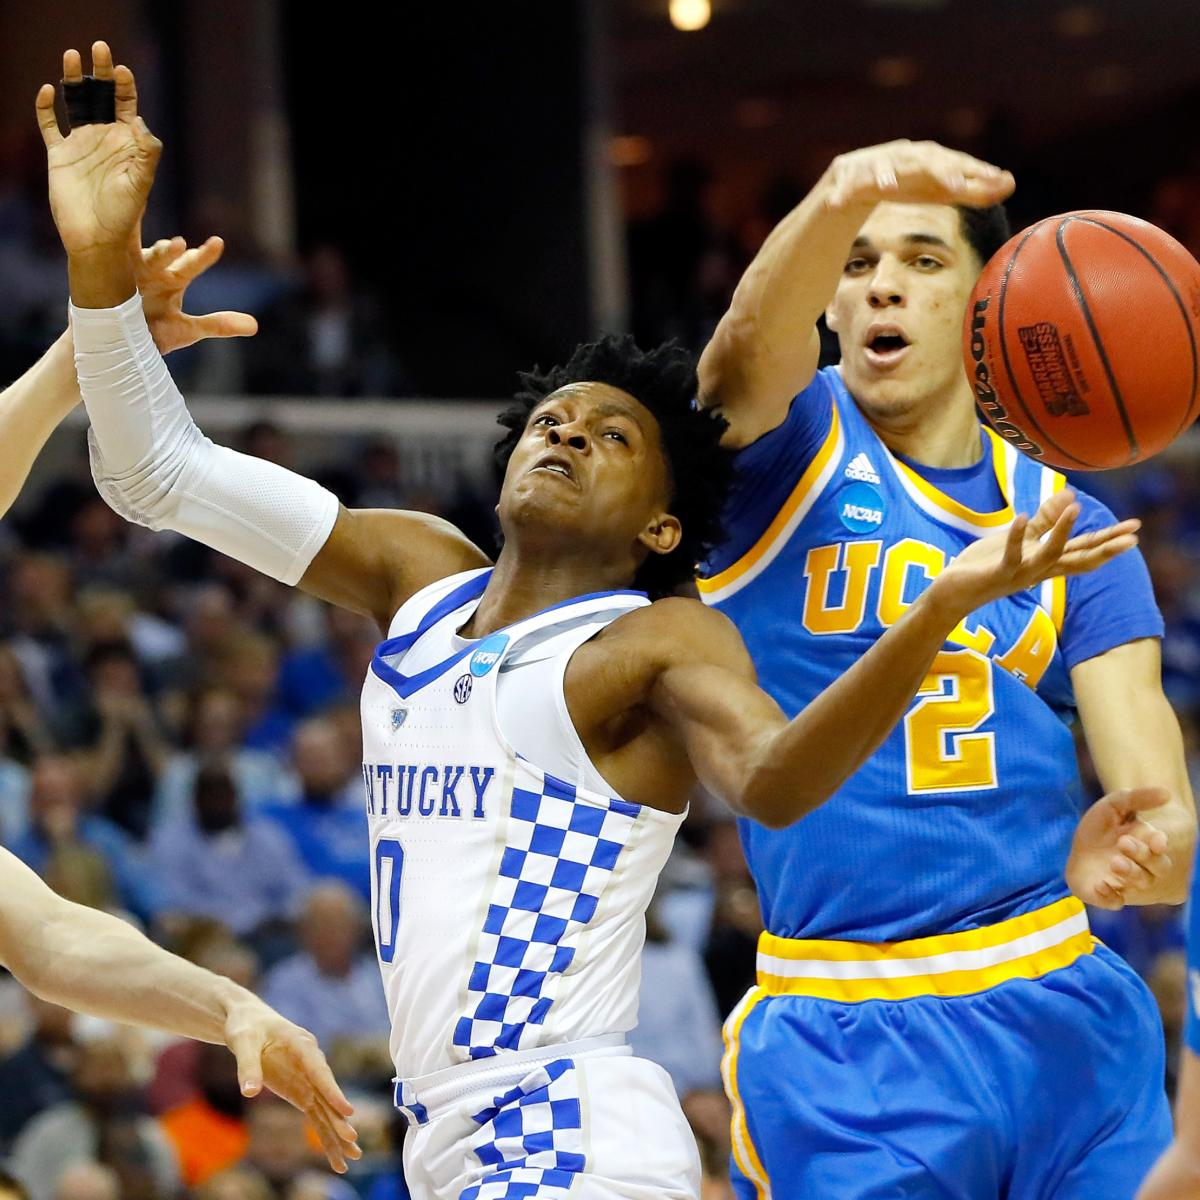 T Of C Alums 2017 Nba Draft: 2017 NBA Mock Draft: Breakdown Of Top PG Prospects And 1st